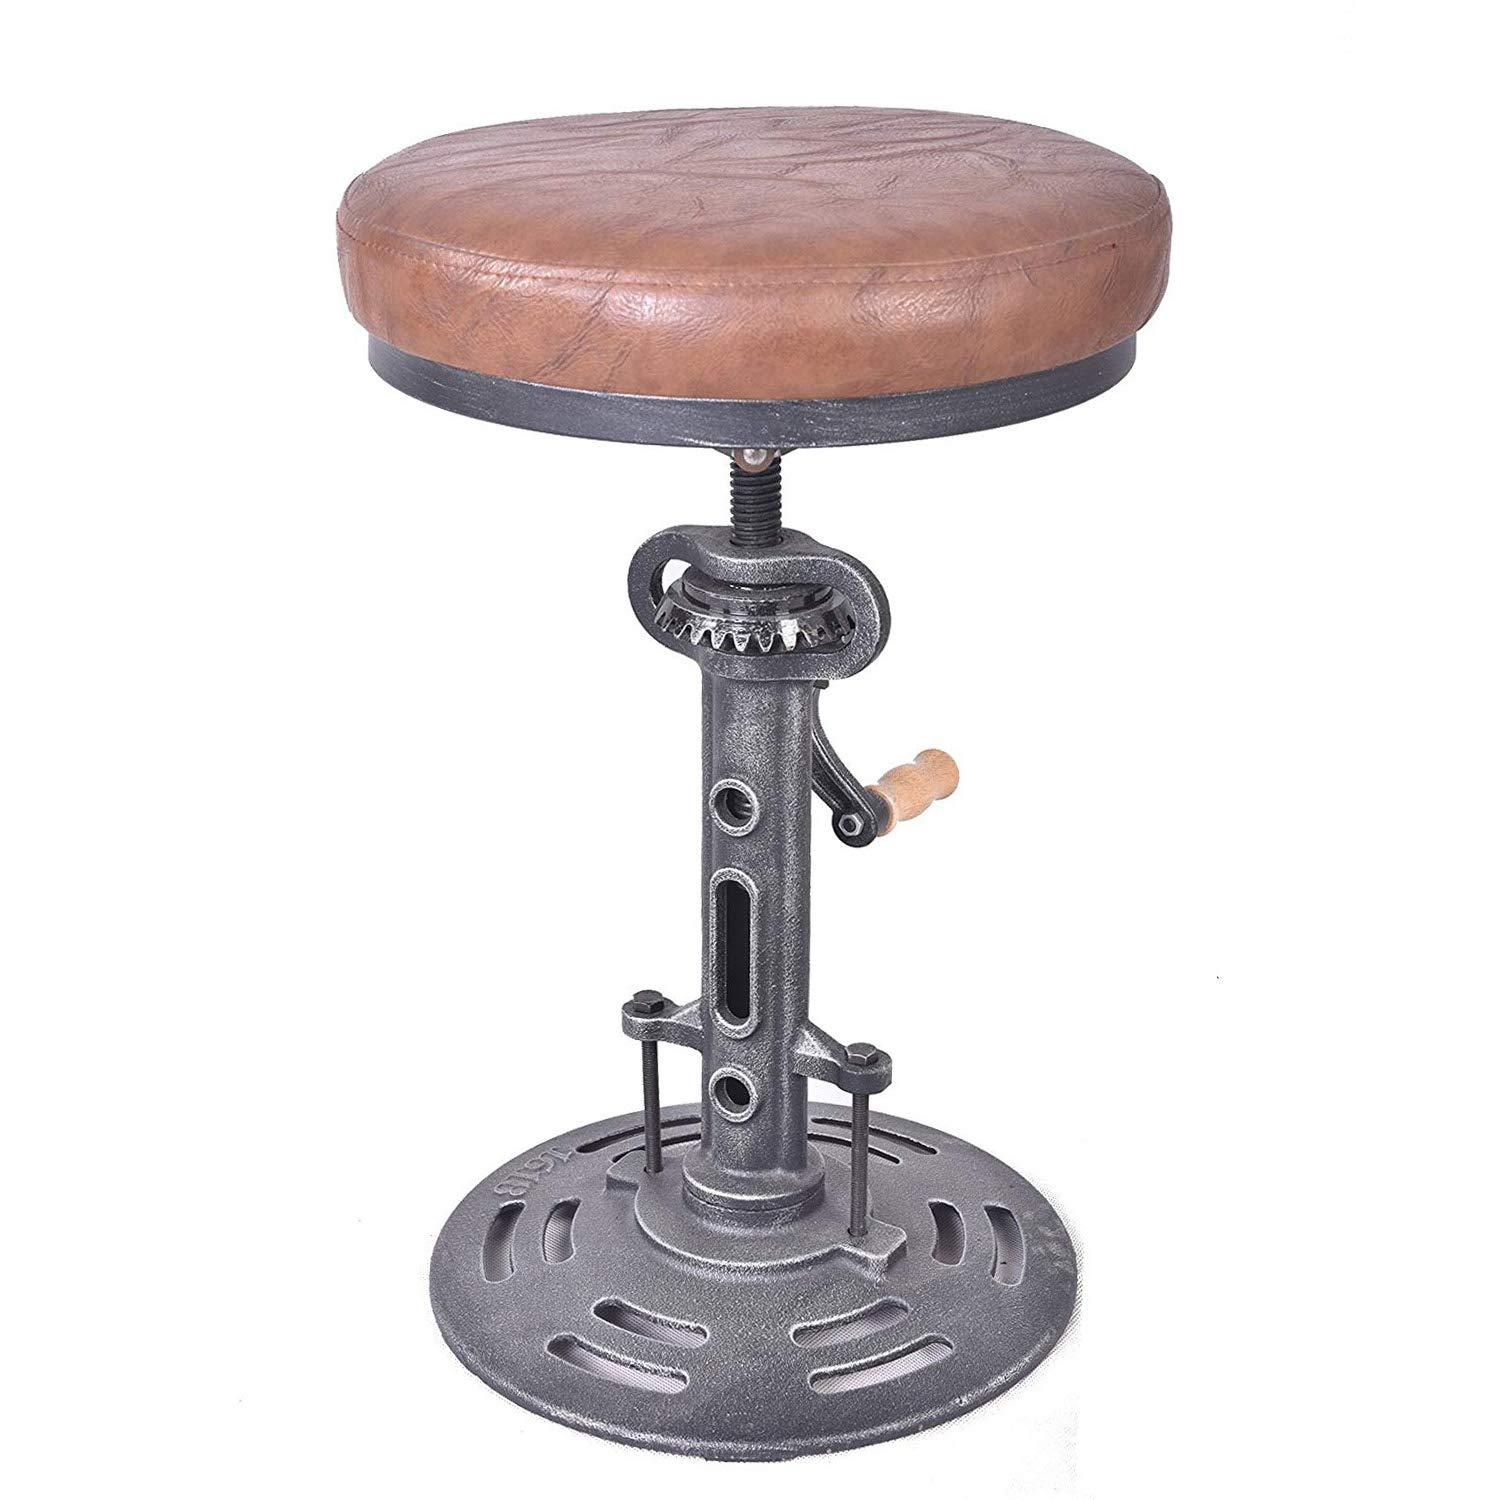 Vintage Industrial Bar Stools DIY Crank Handle Cafe Chair Leather Seat Swivel Height Adjustable Bar Chairs Kitchen Stool